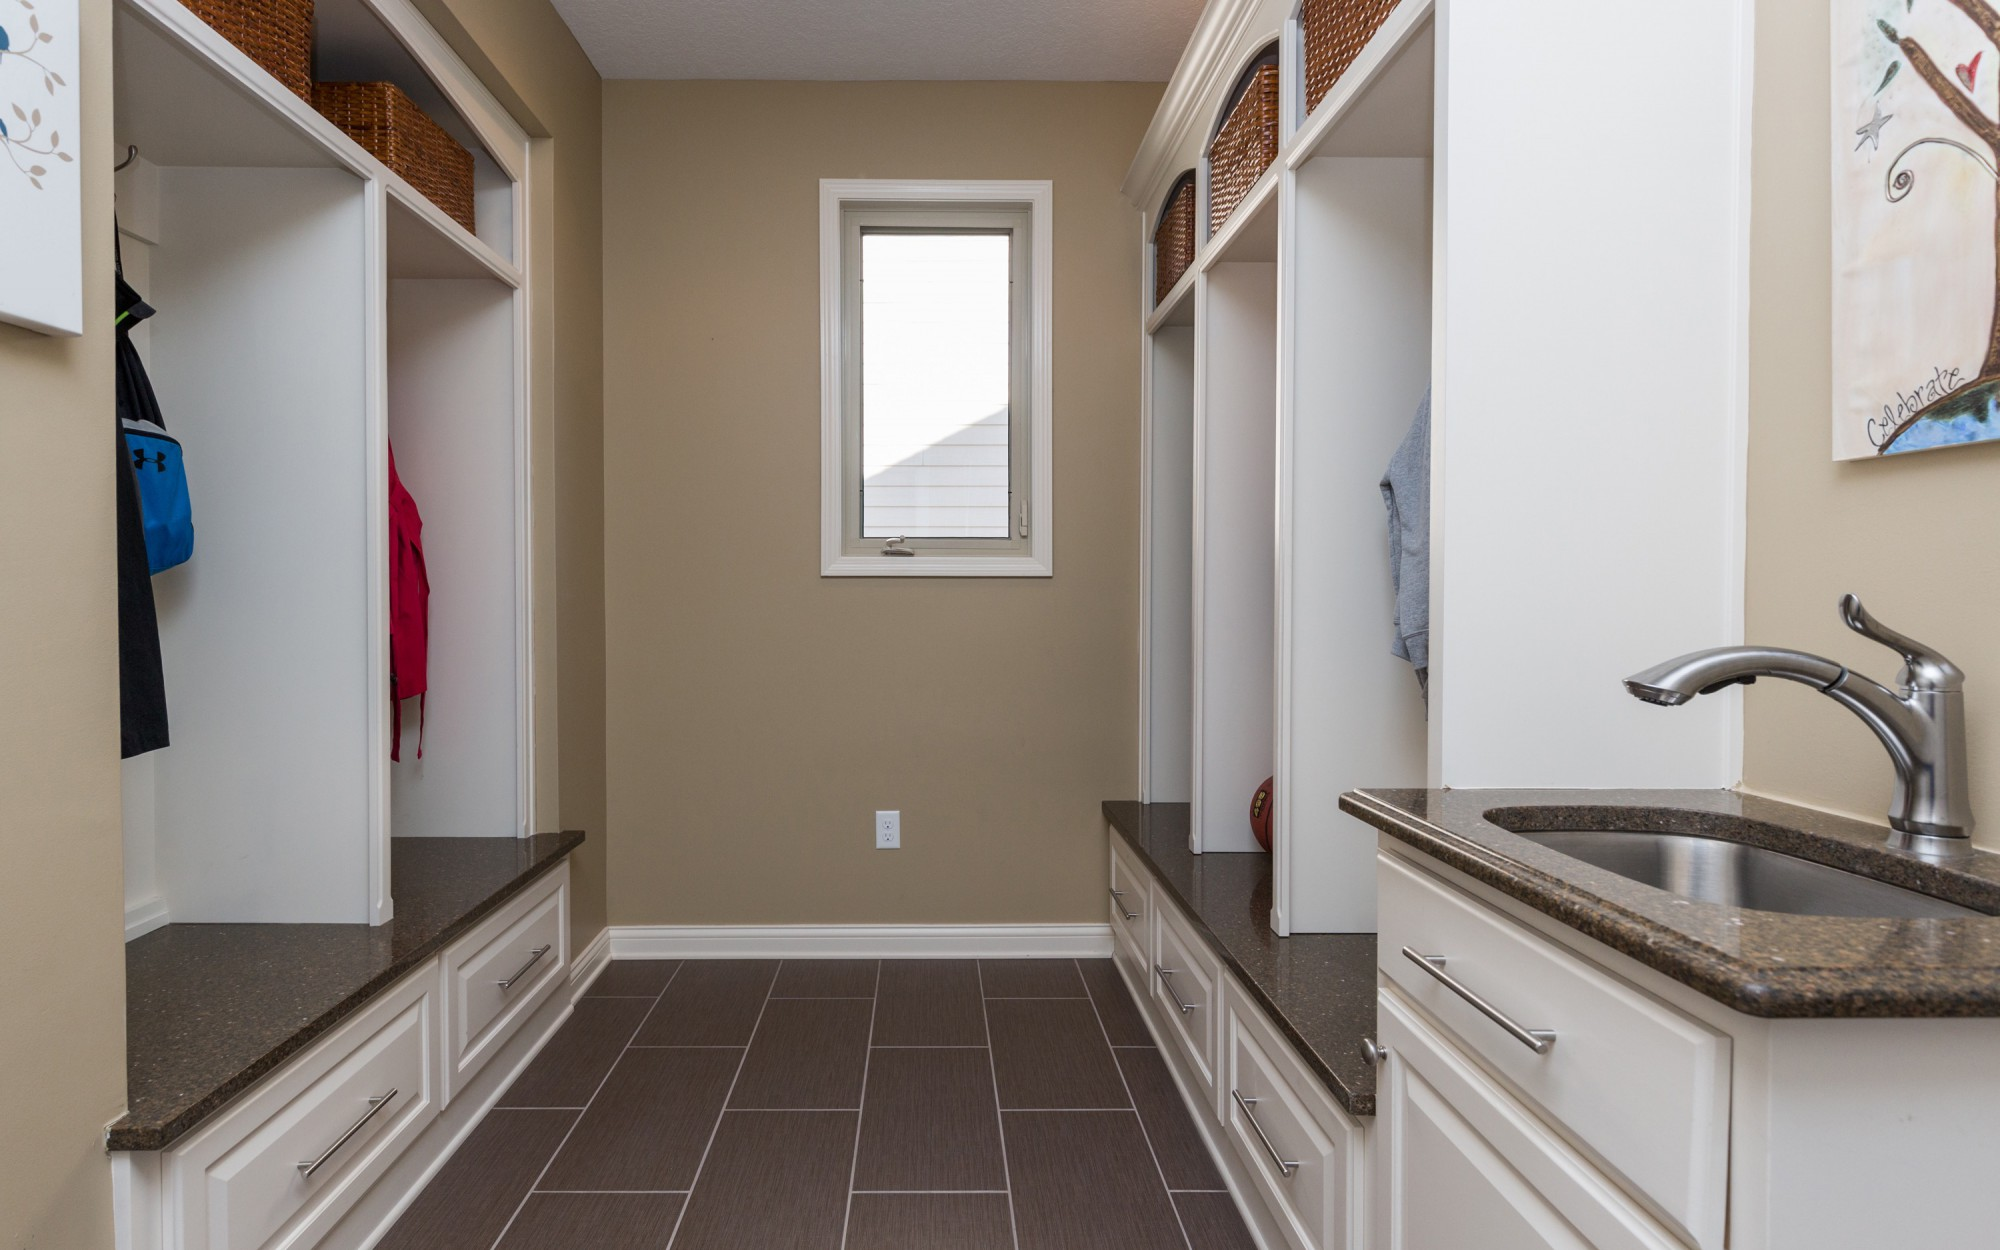 Bathroom Remodeling Des Moines Ia Red House Remodeling  Home Remodeling Des Moines Iowa